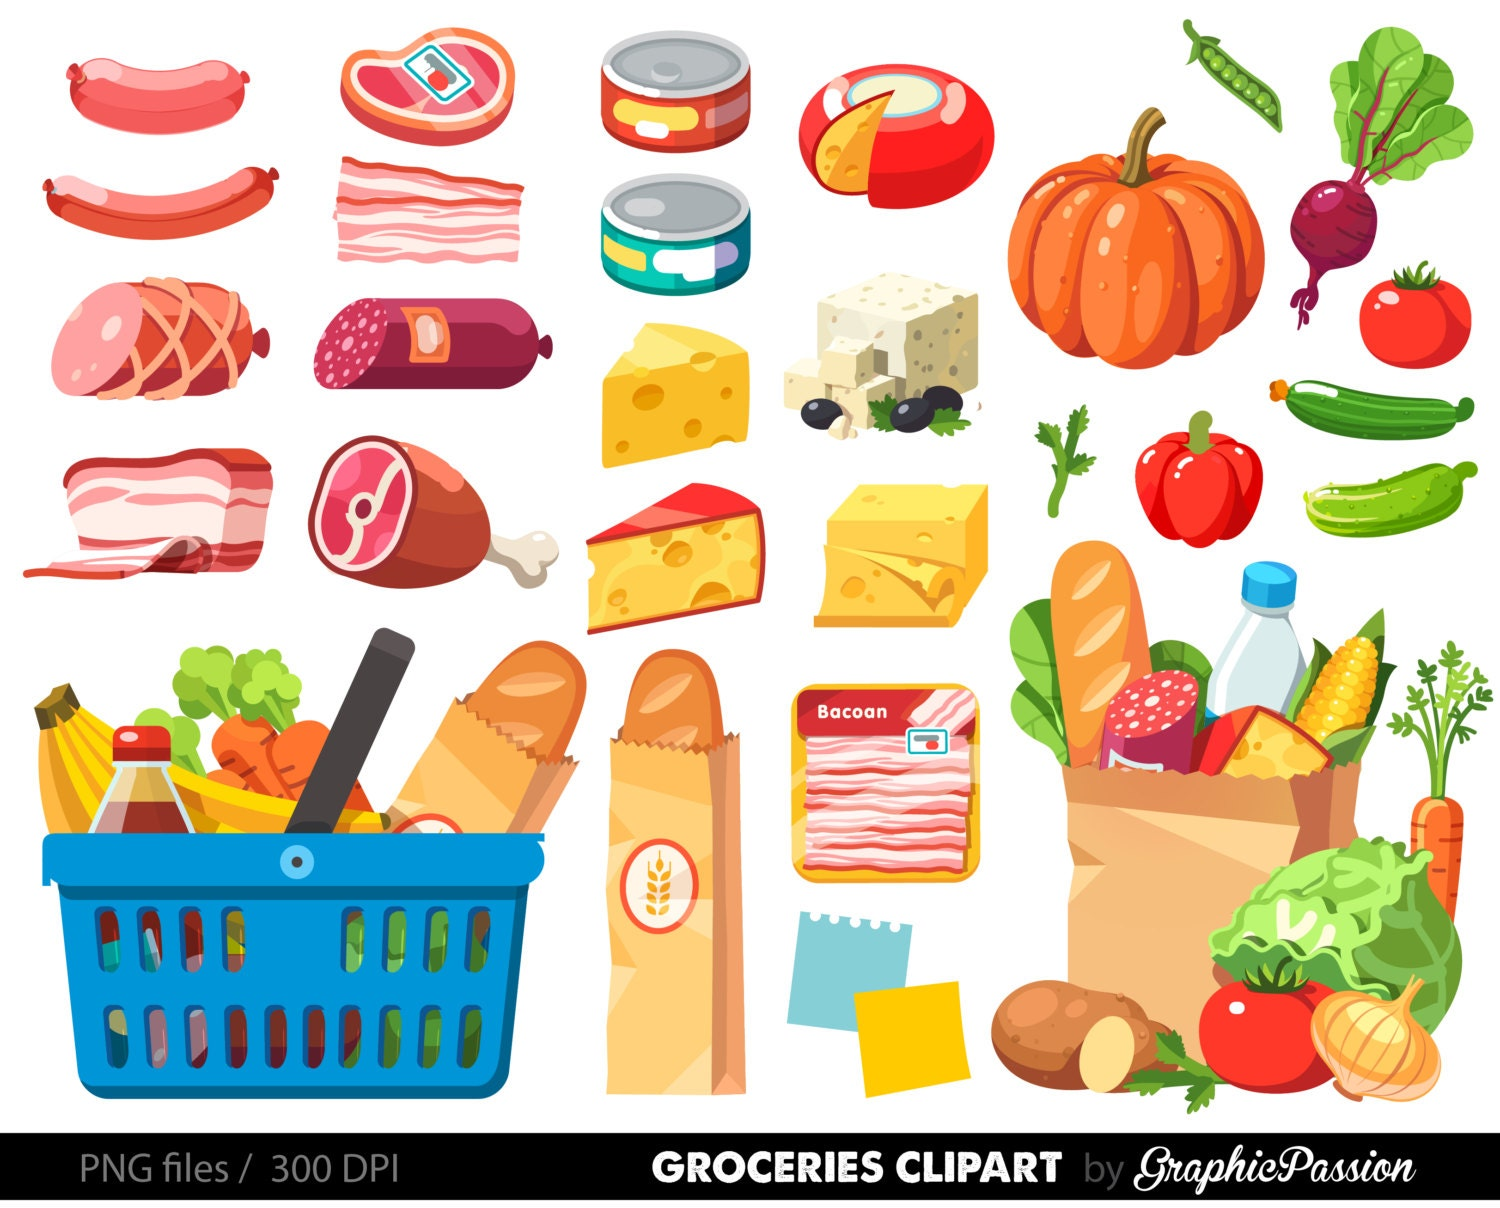 grocery clipart shopping clipart food clipart dinner clipart rh etsy com grocery store clipart images grocery store shelves clipart